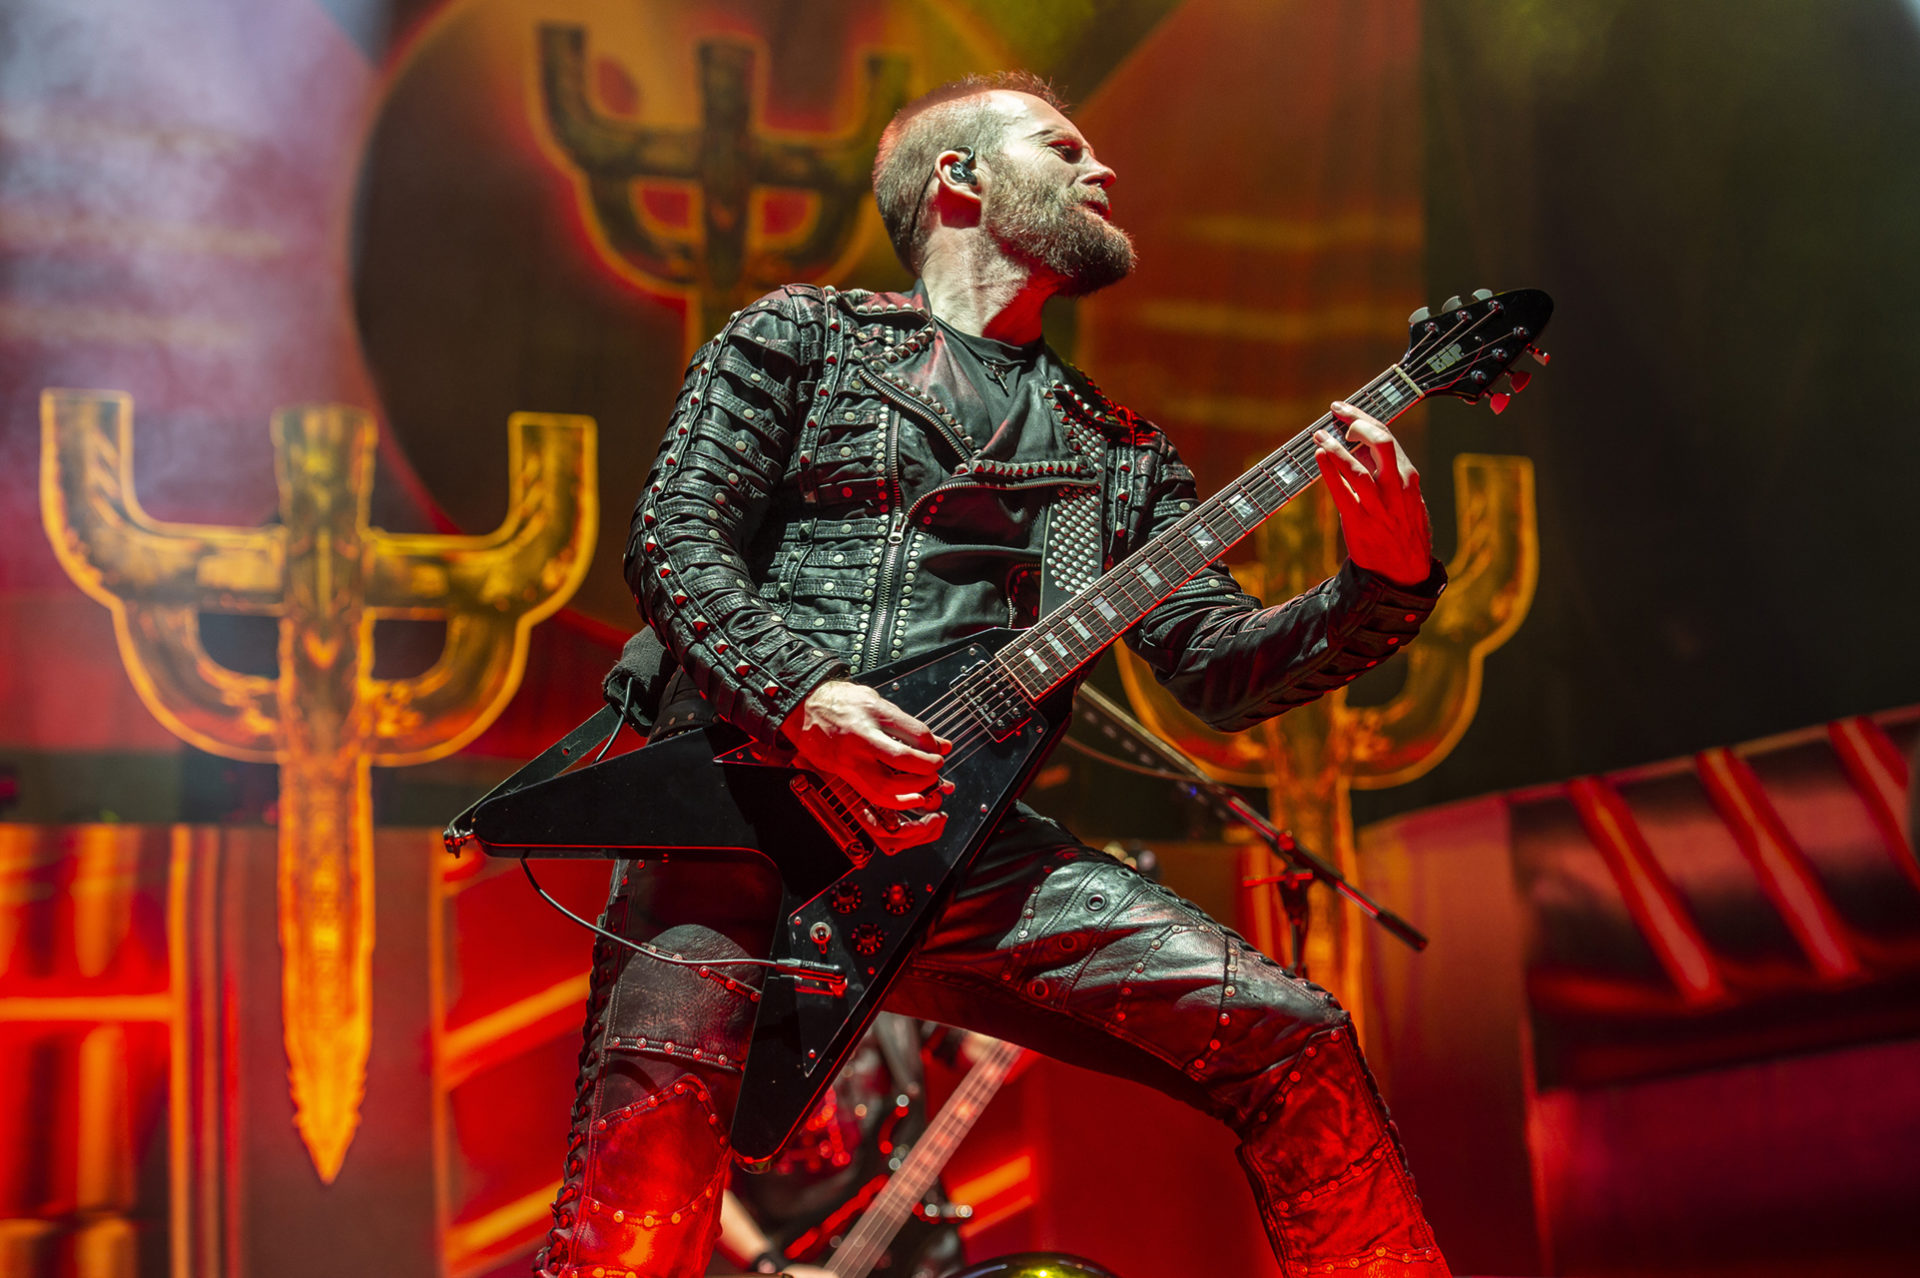 Judas_Priest_1